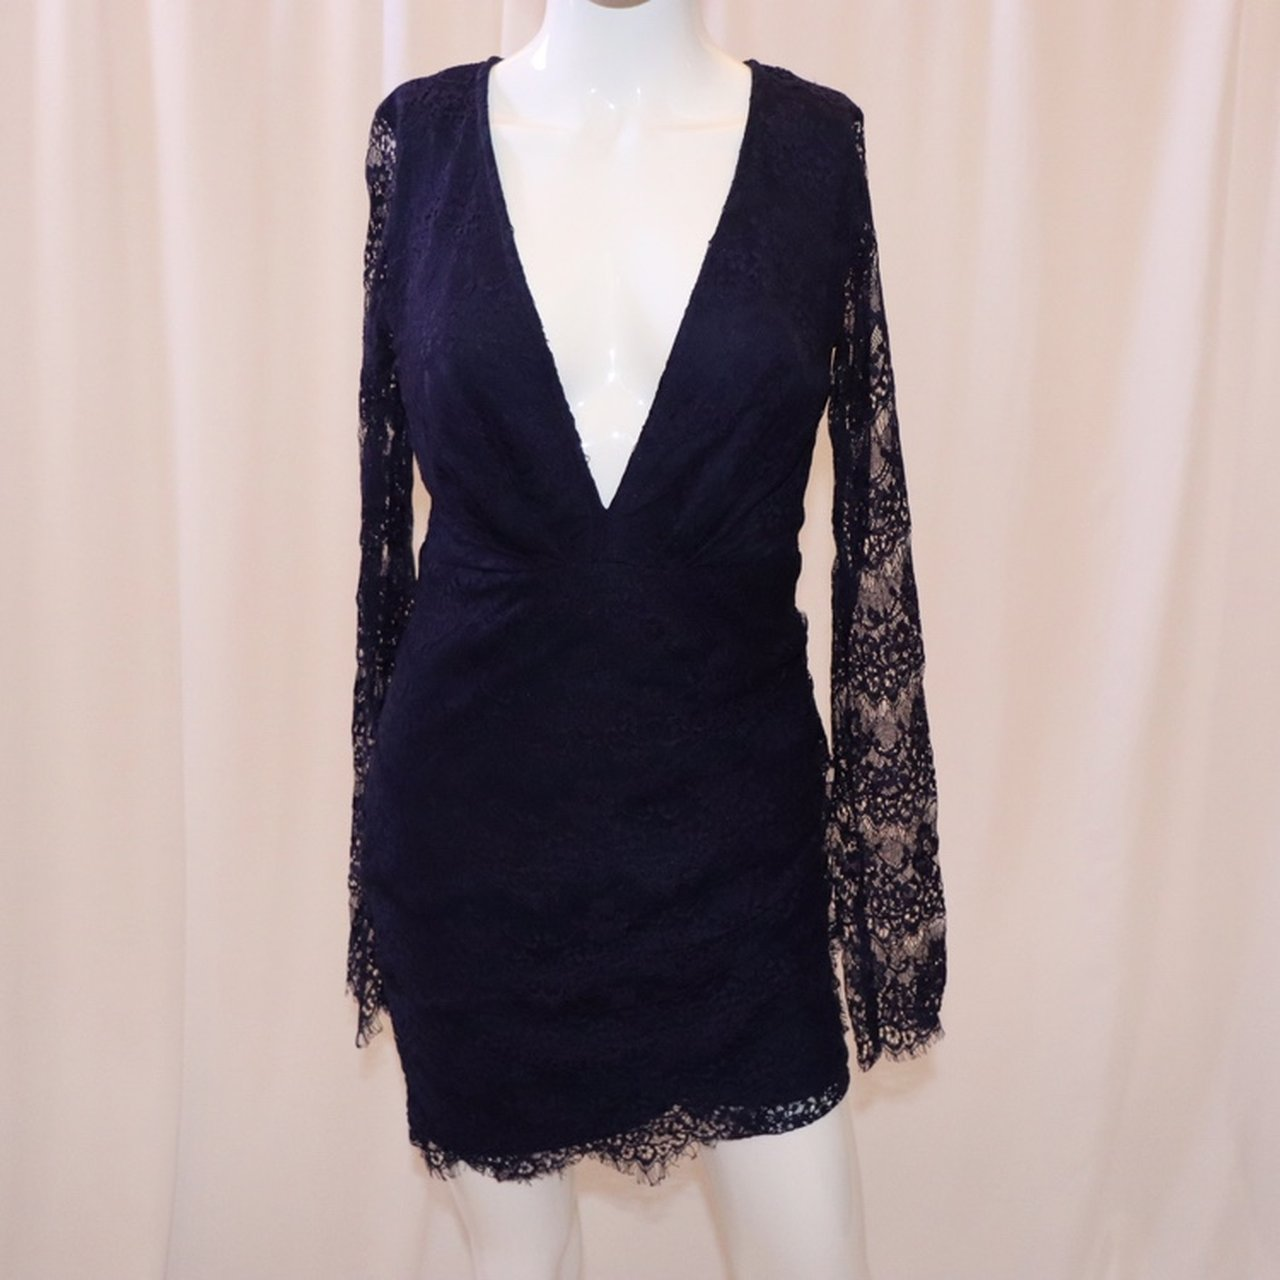 0af25eced0cd Navy Blue Long Sleeve Cocktail Dress - raveitsafe